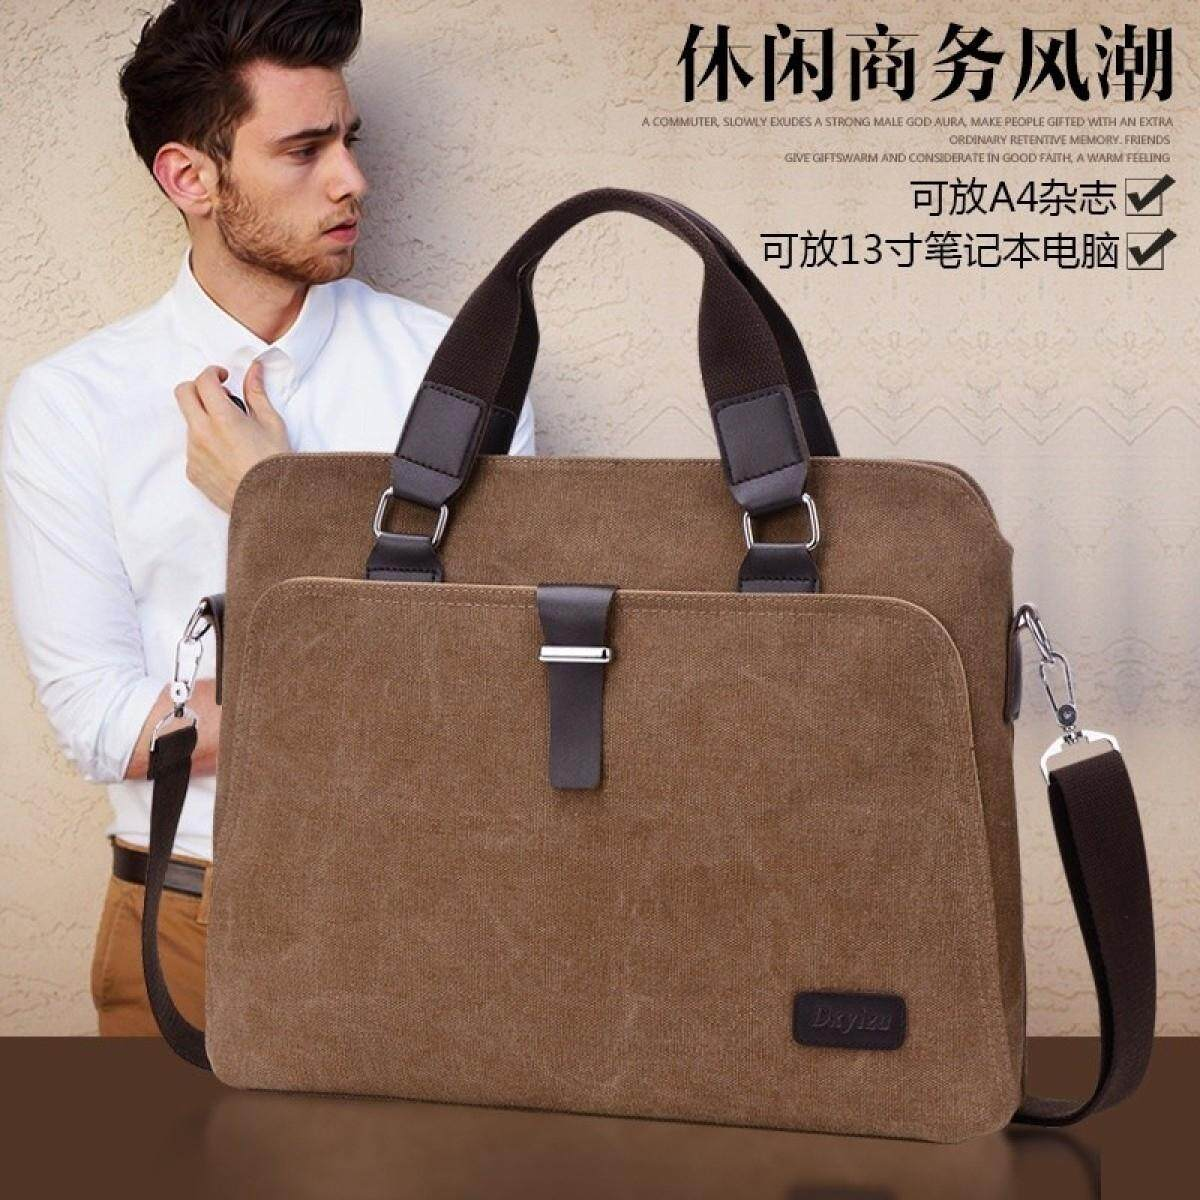 Vintage Crossbody Bag Military Canvas Shoulder Bags Men Messenger Bag Men Casual Handbag Tote Business Briefcase